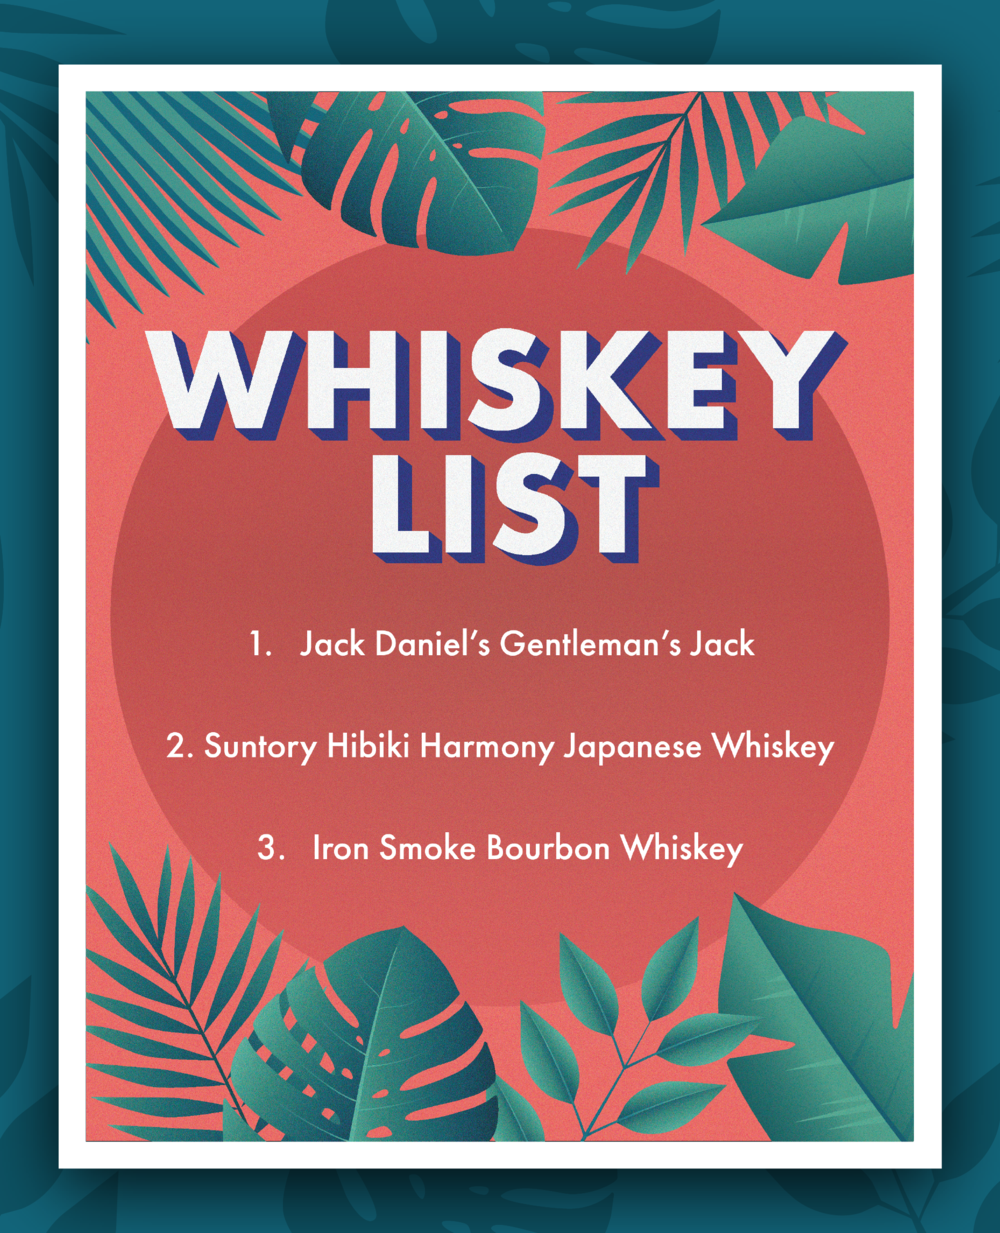 whiskeyfinal-01.png